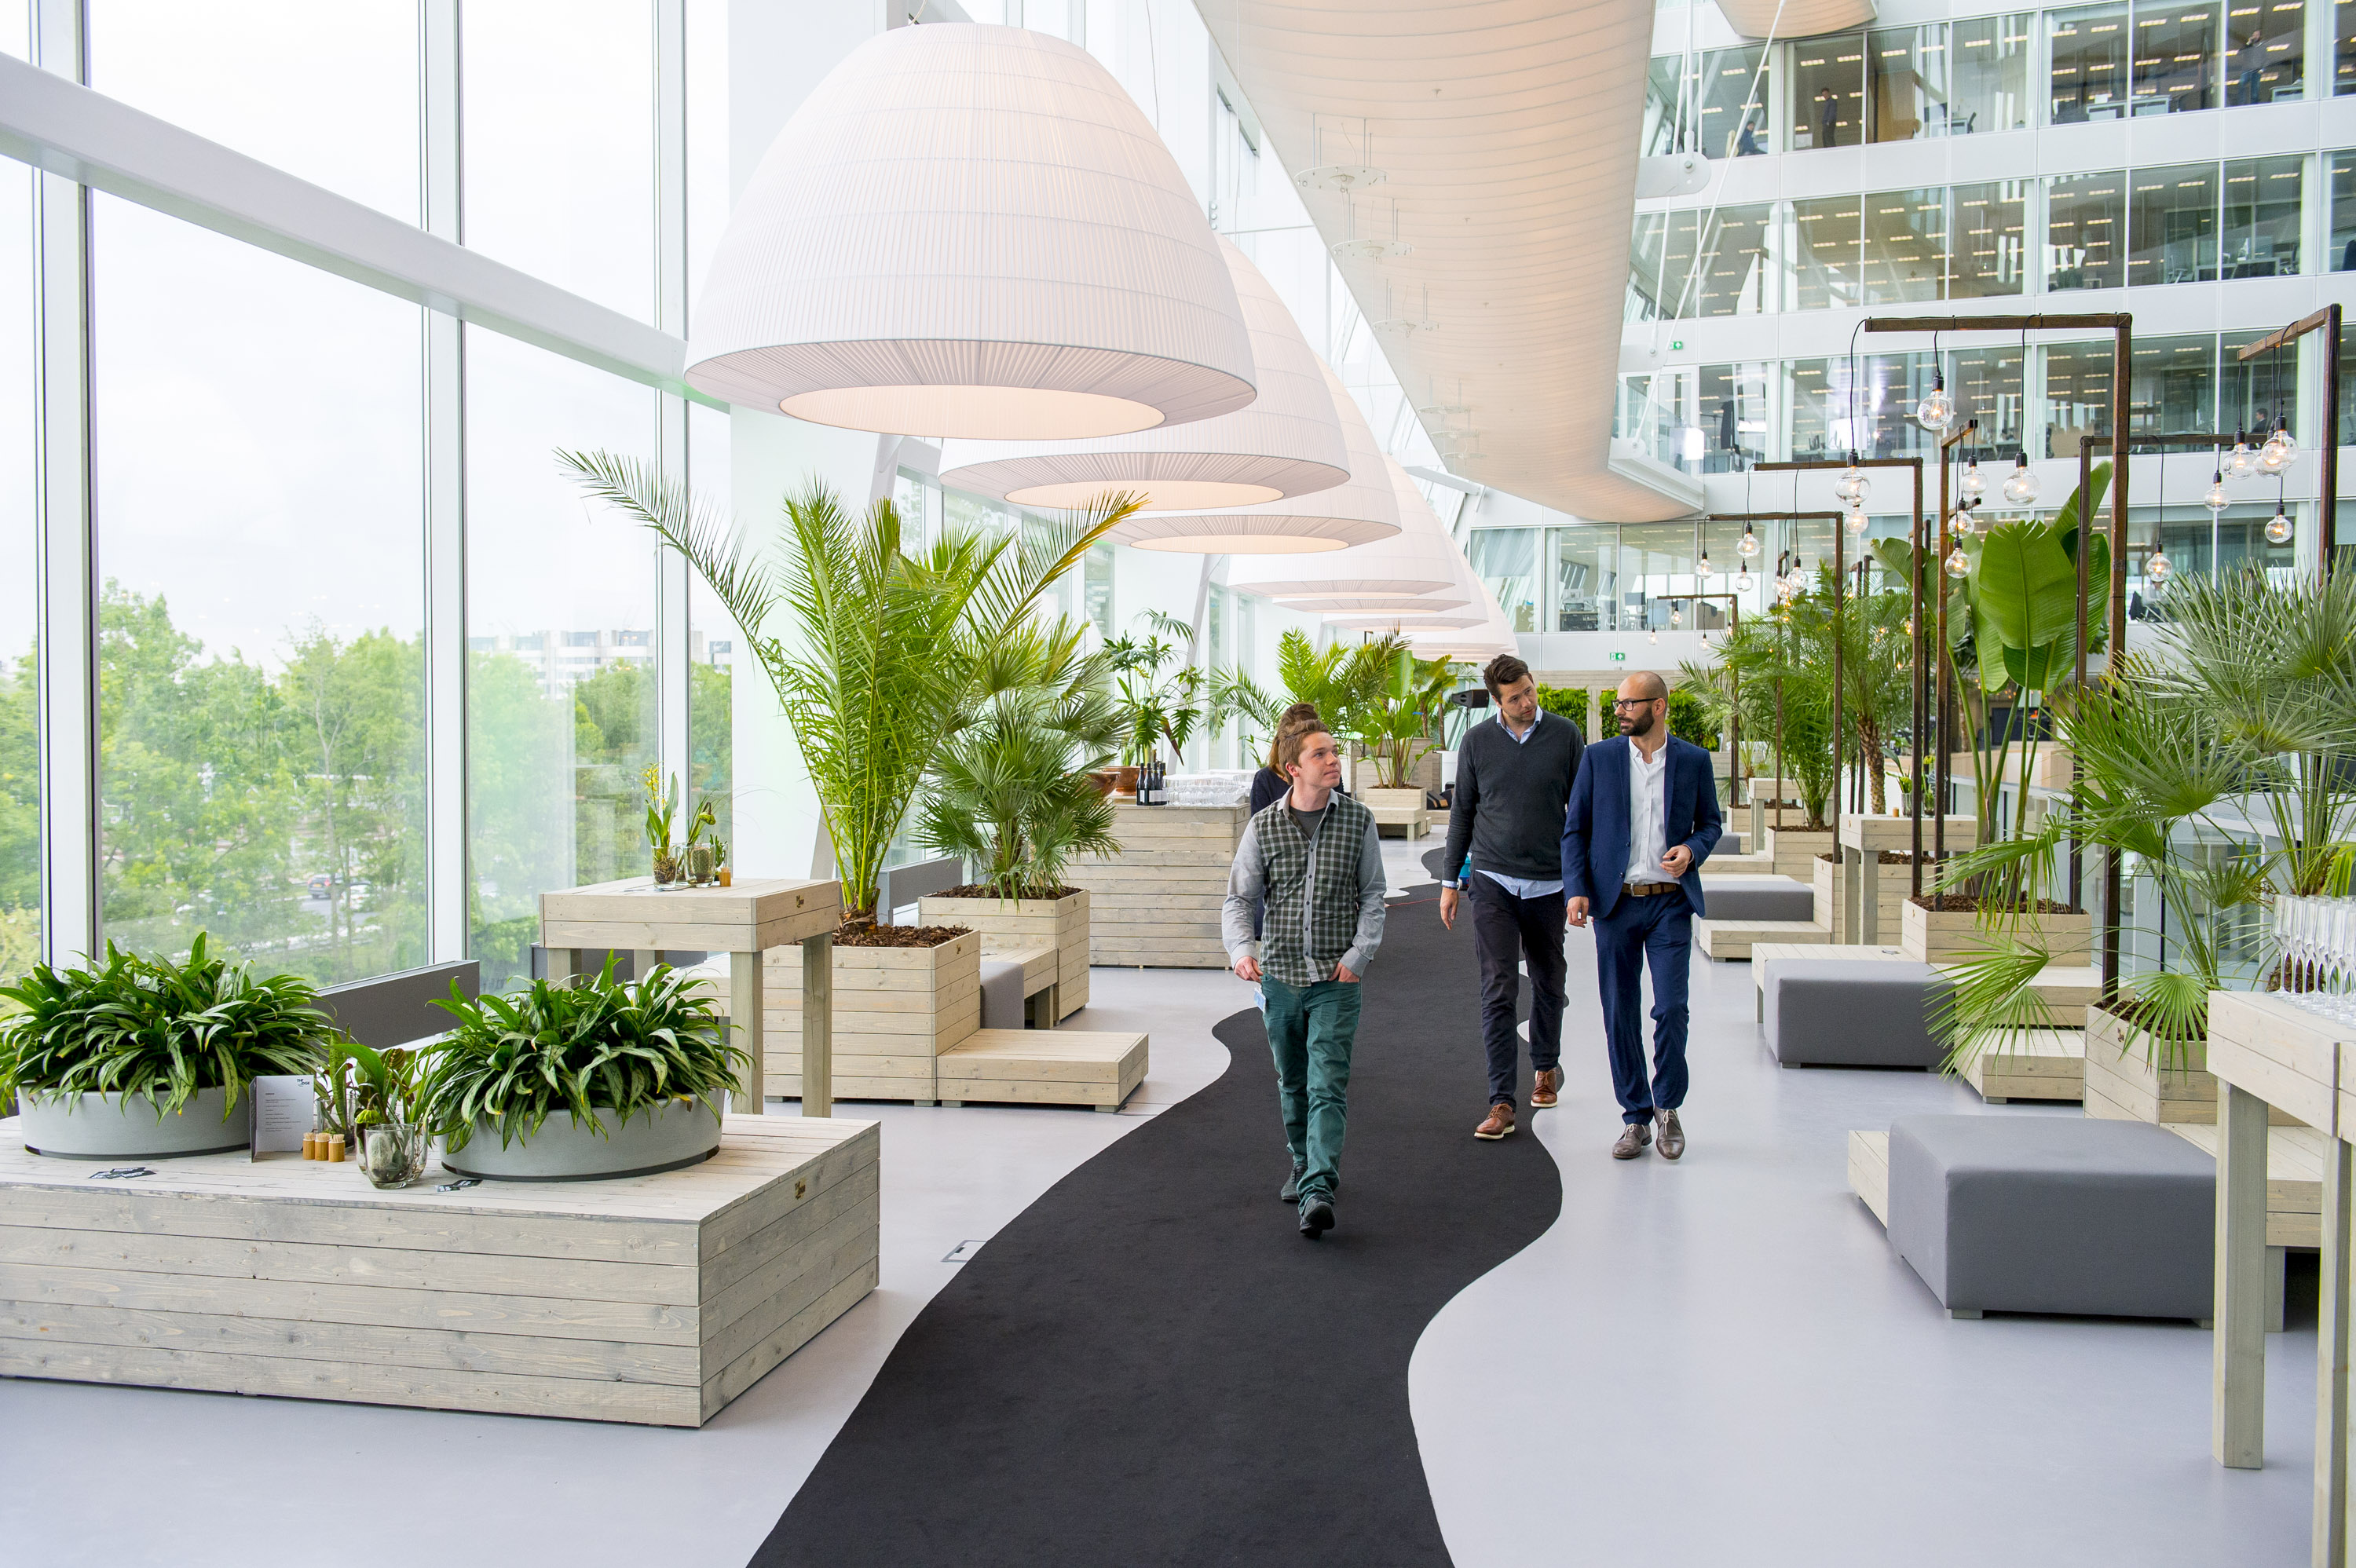 The Edge (Amsterdam) is the world's most sustainable office building in the world. OVG Real Estate, in partnership with Deloitte, opened the building earlier this year | Credits:gresb.co